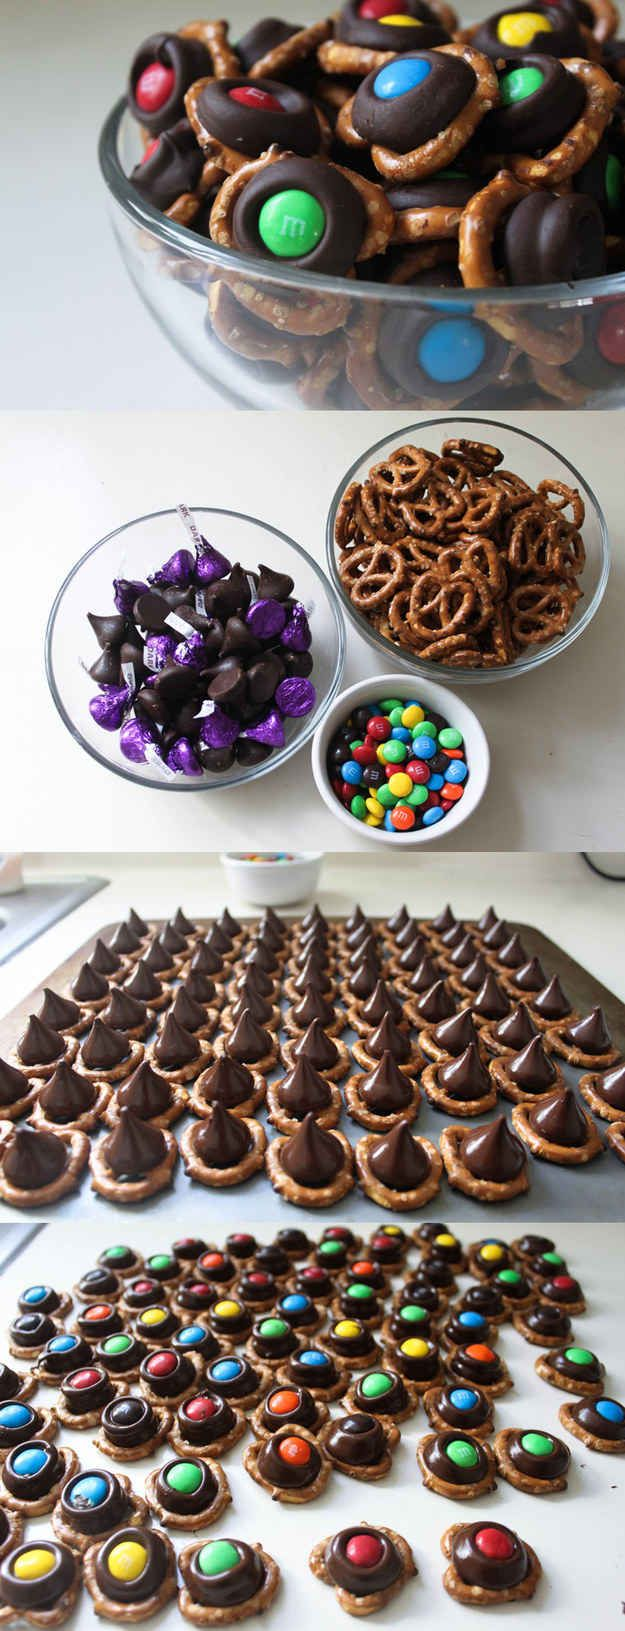 Chocolate Pretzel Bites | 17 Super-Easy Appetizers That'll Make You Look Sophisticated